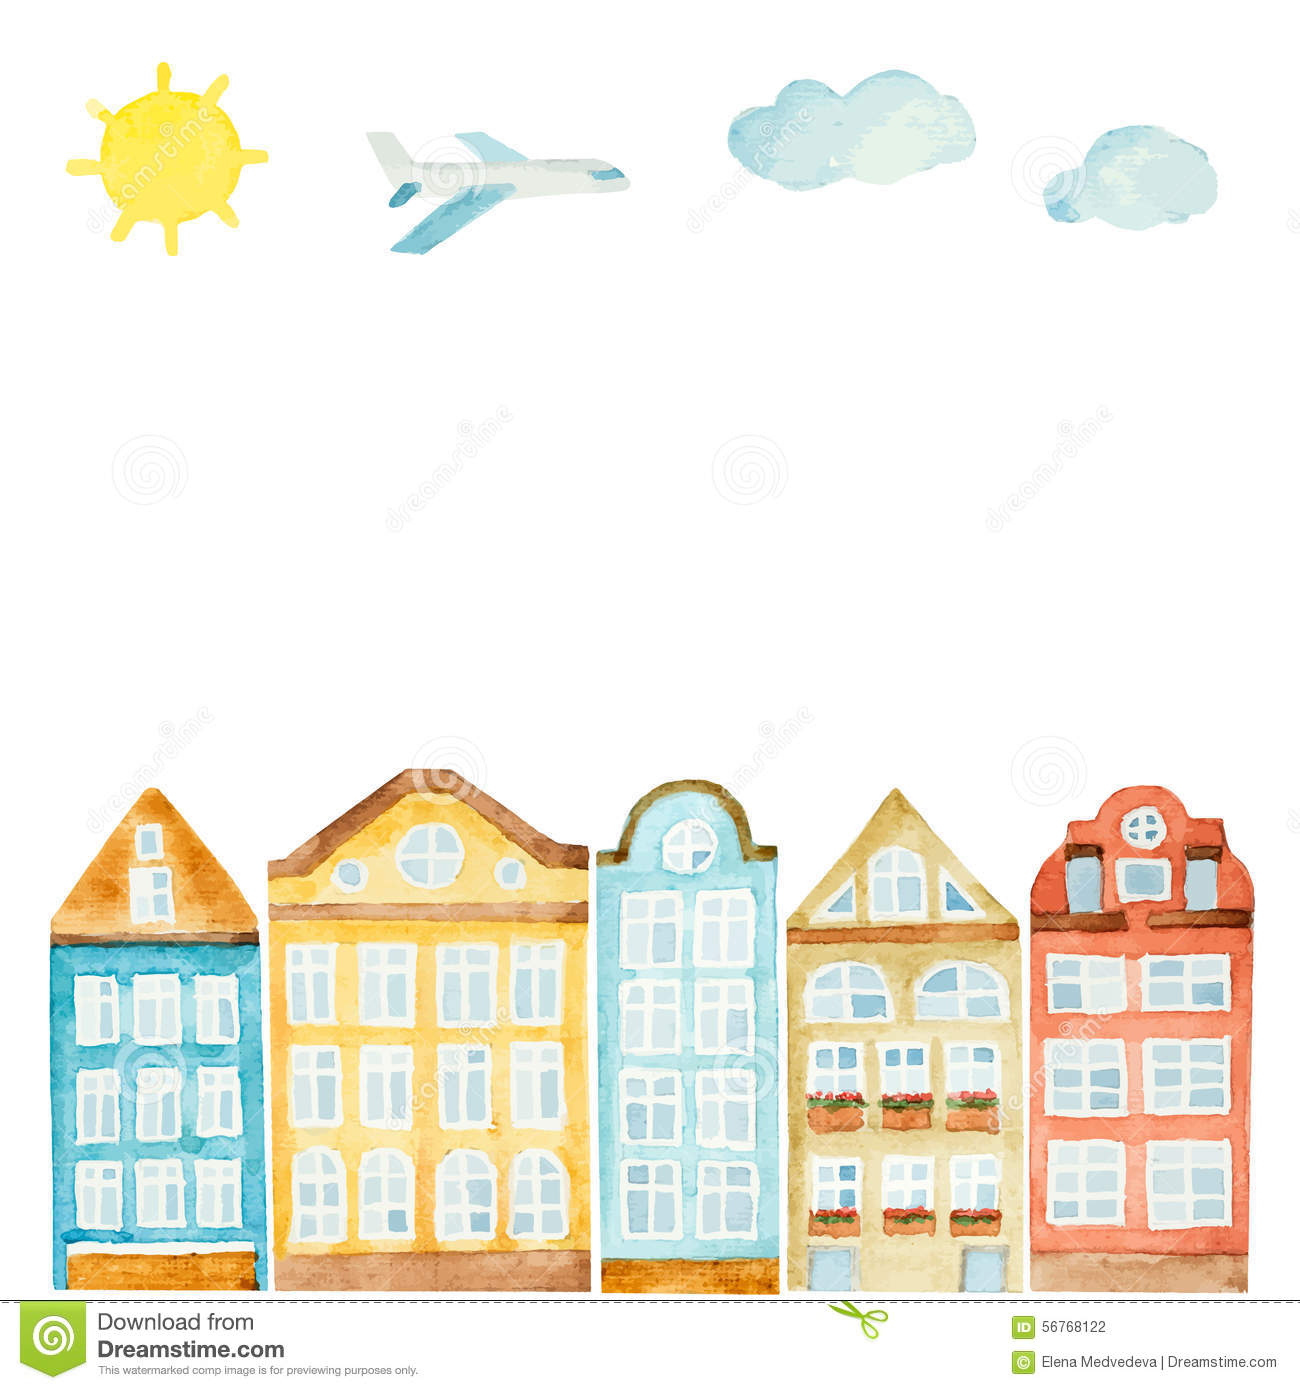 House clouds clipart - Clipground